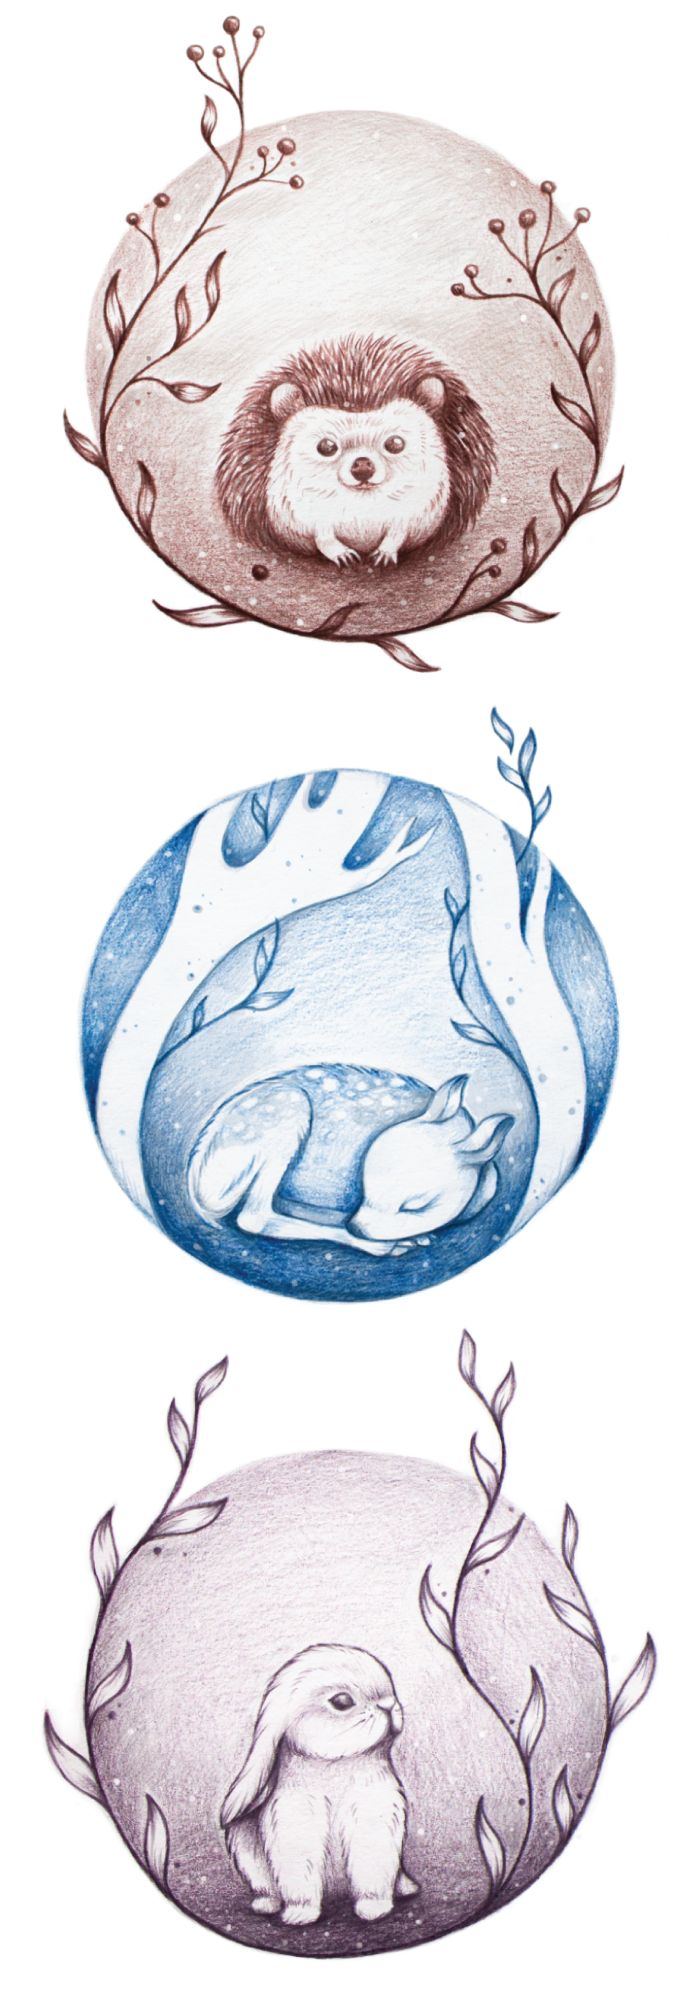 Hedgehog, Fawn & Bunny Holiday Greeting Cards on Behance                                                                                                                                                                                 More